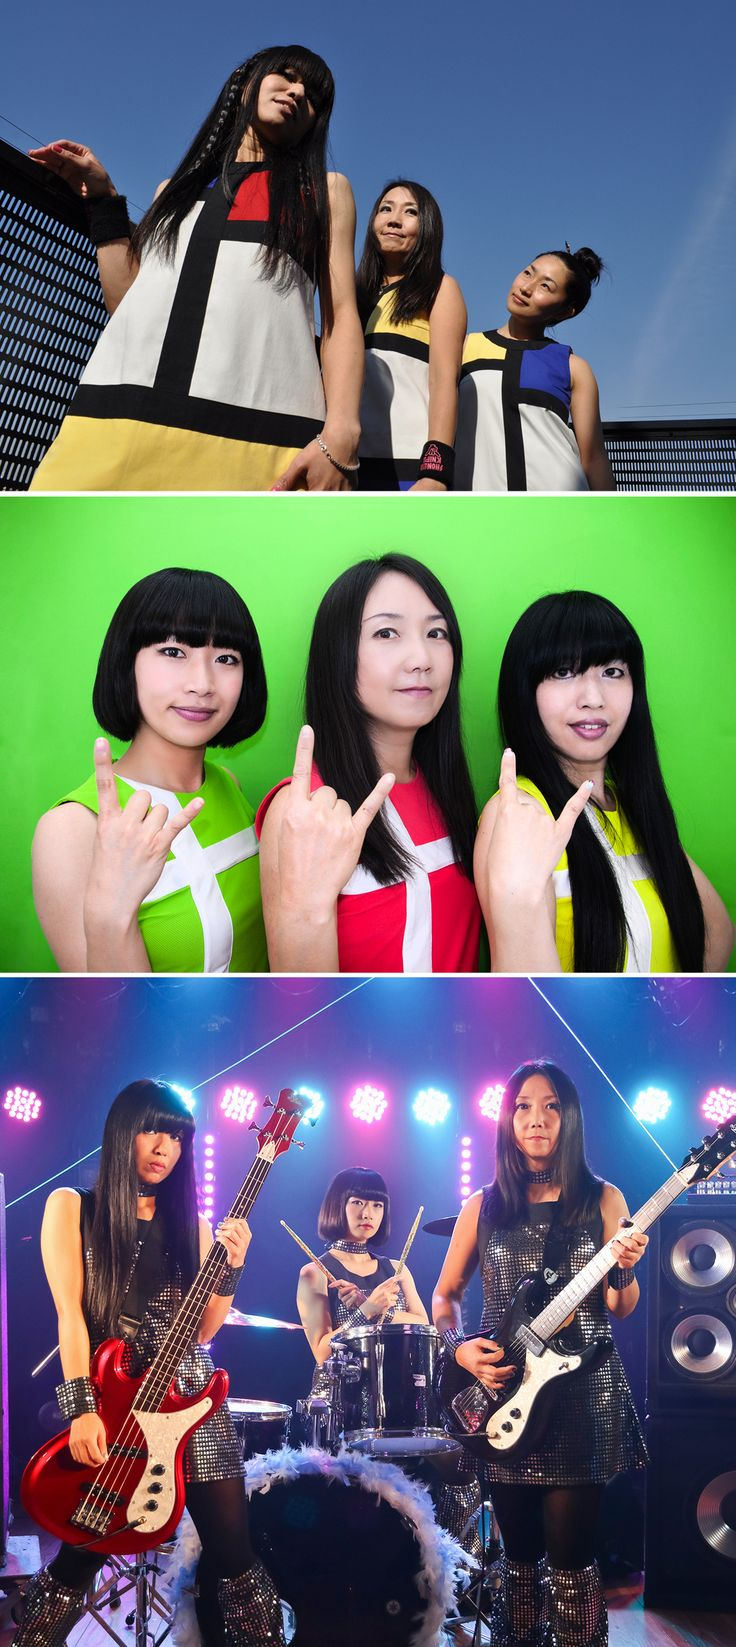 This weeks #SundaySessions are brought to you all the way from Japan courtesy of #ShonenKnife - the most lovable punk band on the planet! Check out our interview and their smooth playlist.